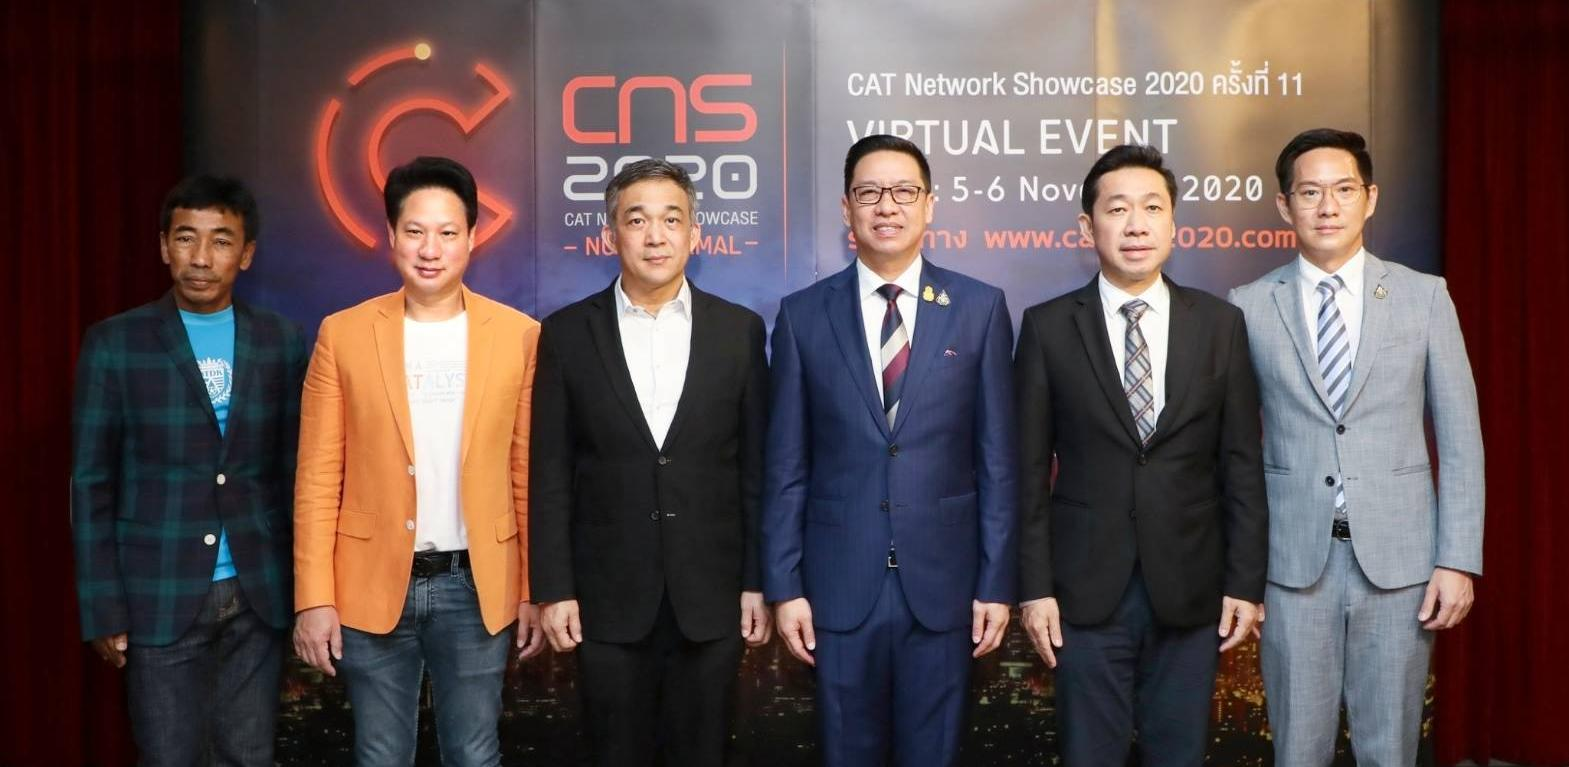 CAT NETWORK SHOWCASE 2020 HELD VIRTUALLY FOR THE FIRST TIME  SHOWCASE NOW NORMAL TECHONOLOGY  TO STEP INTO THE COMPLETE DIGITAL TRANSFORMATION ERA